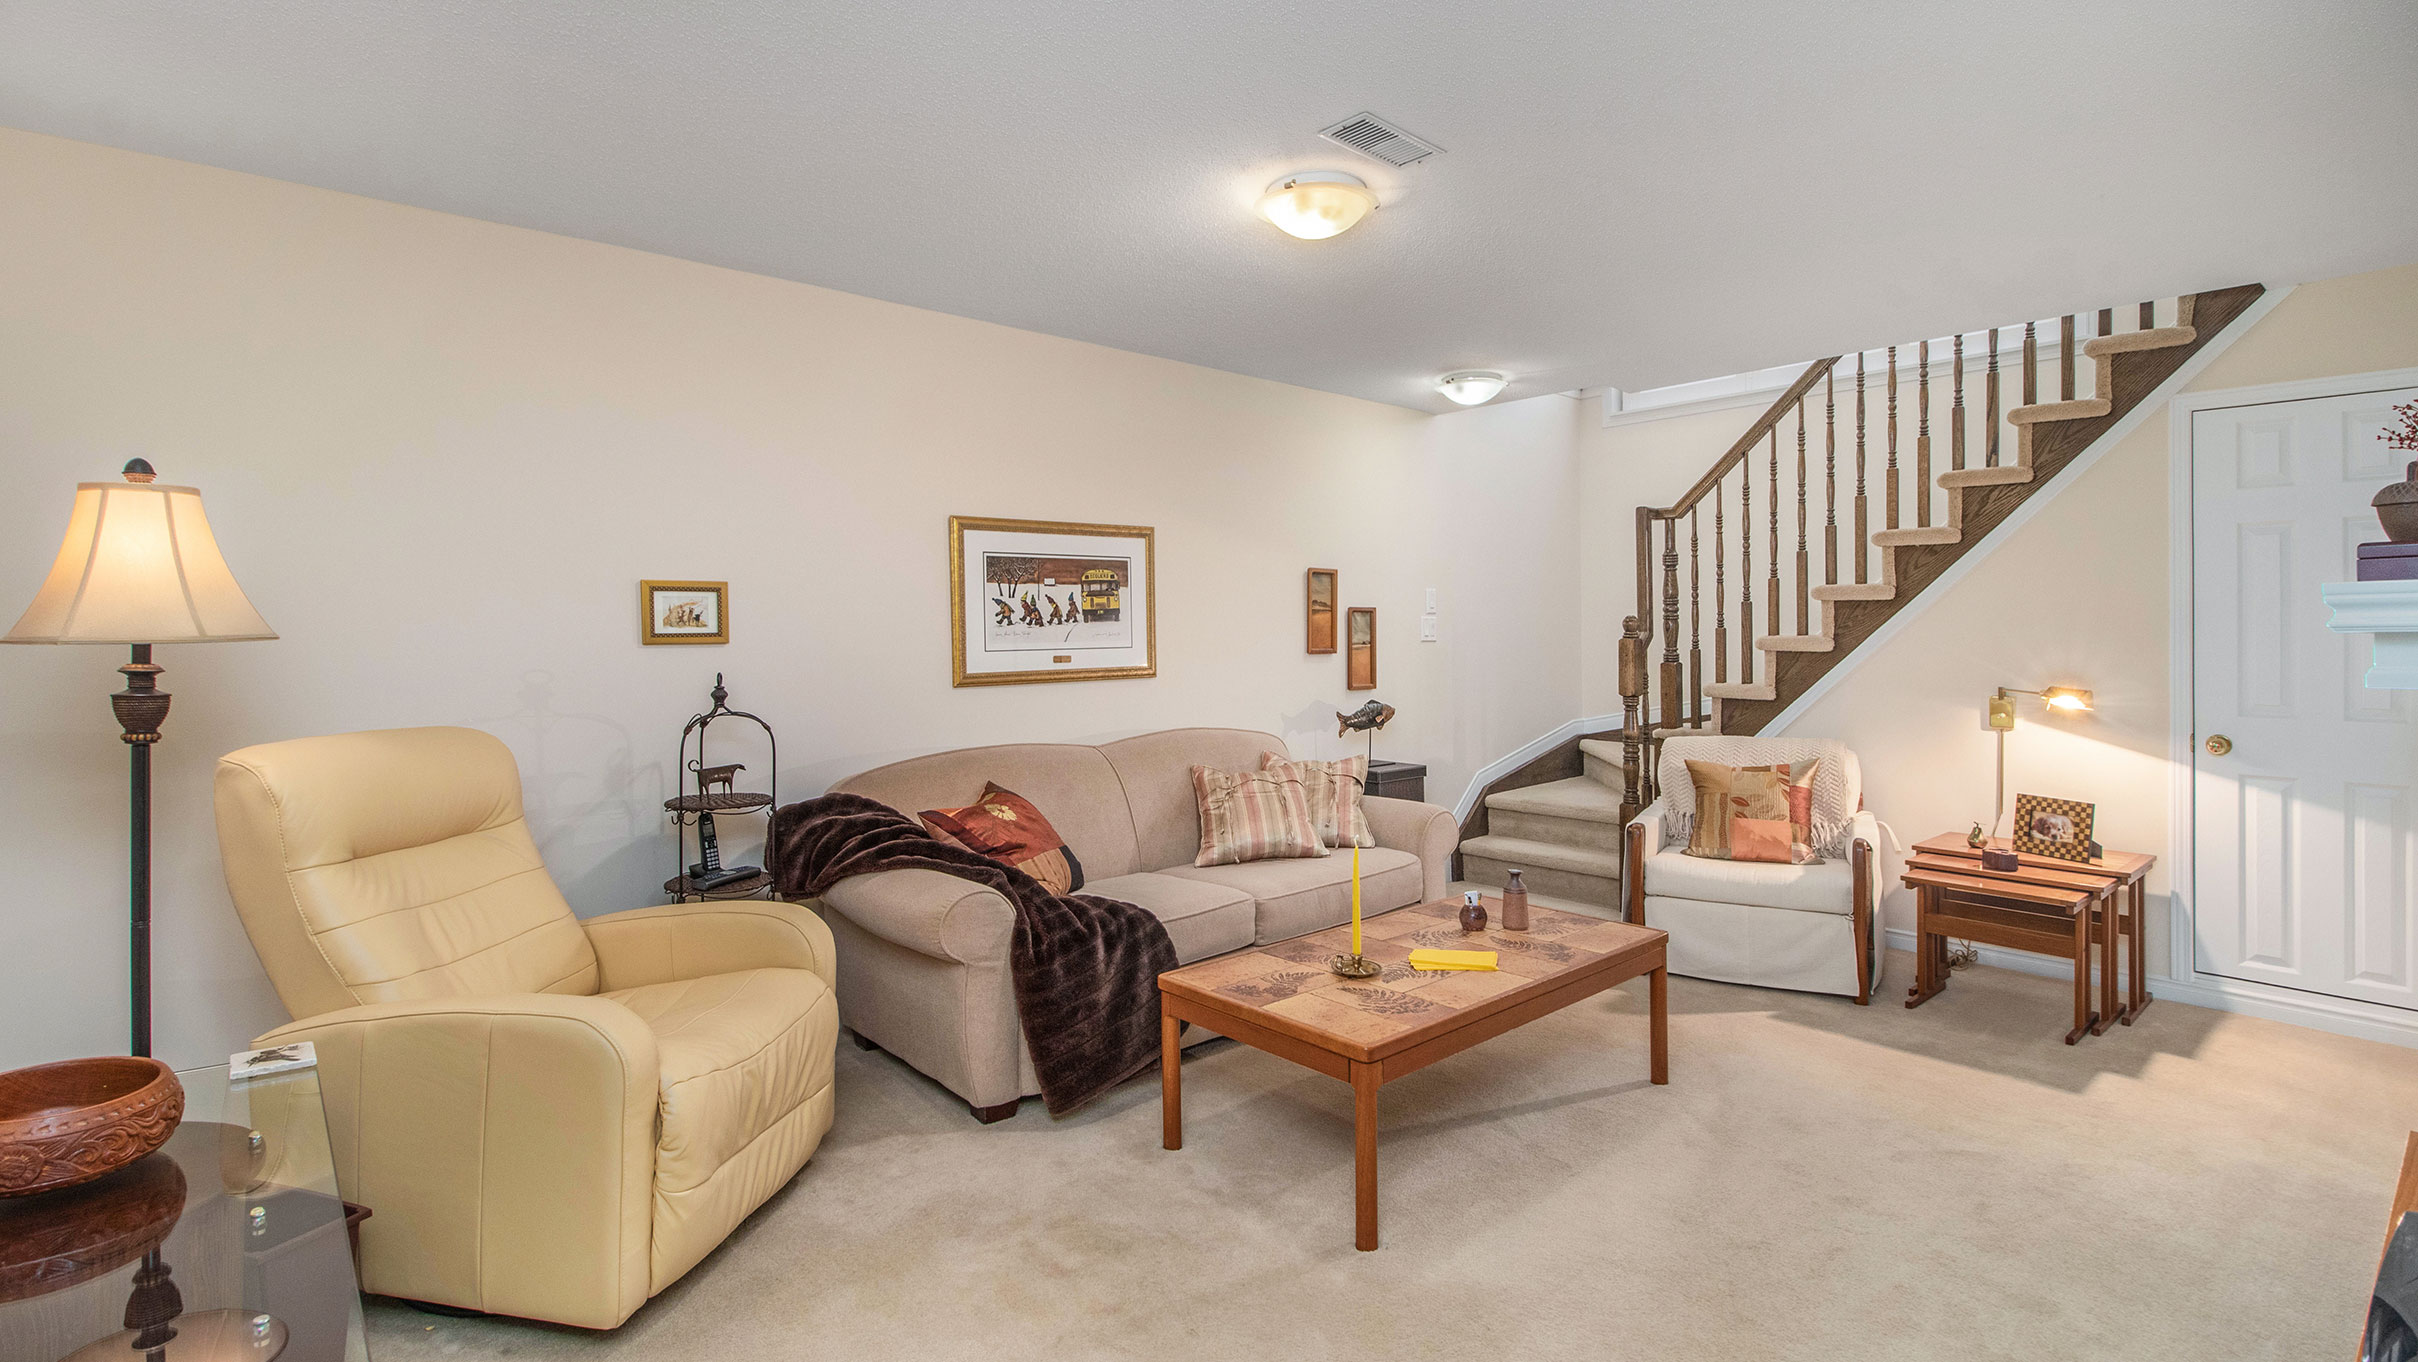 Located in the lower level, this family room is as cozy as they come with an open staircase allowing the natural light to pour through, as well as plush carpets and a natural gas fireplace for added warmth and ambiance